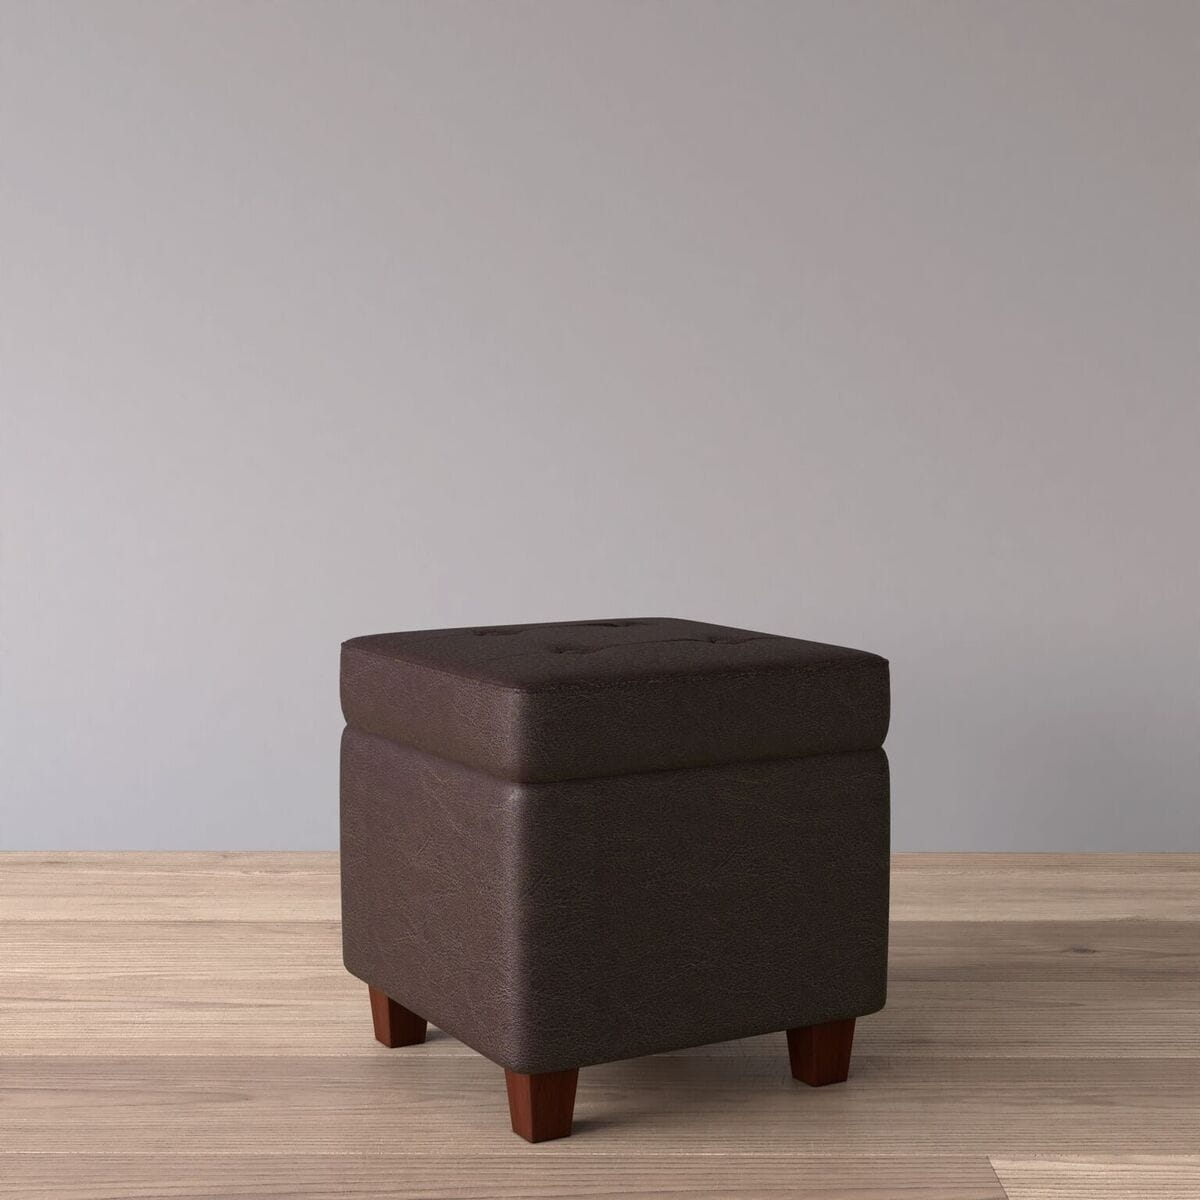 Incredible Porch Den Bittern Square Tufted Faux Leather Storage Ottoman Cjindustries Chair Design For Home Cjindustriesco